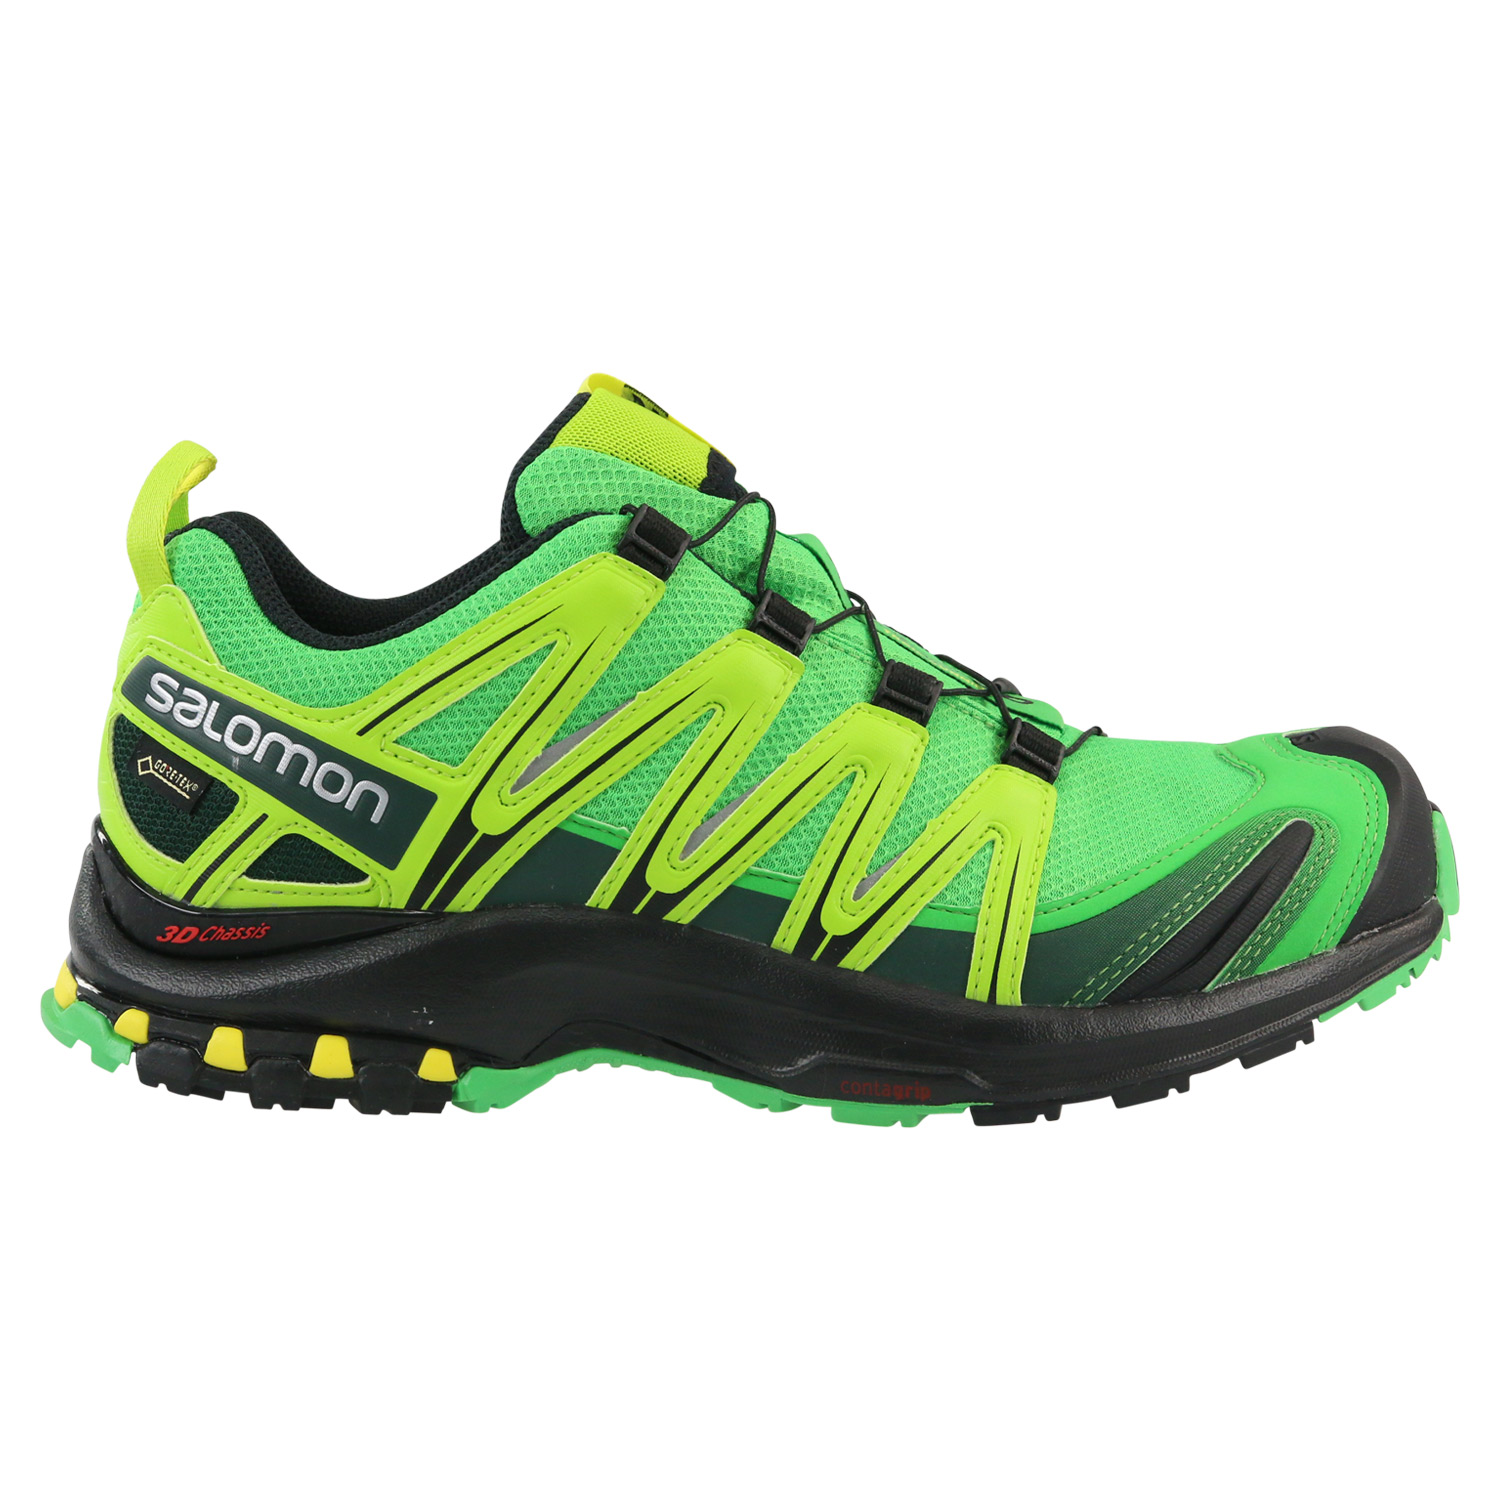 salomon xa pro 3d gtx wanderschuhe trekking outdoor schuhe gore tex herren ebay. Black Bedroom Furniture Sets. Home Design Ideas